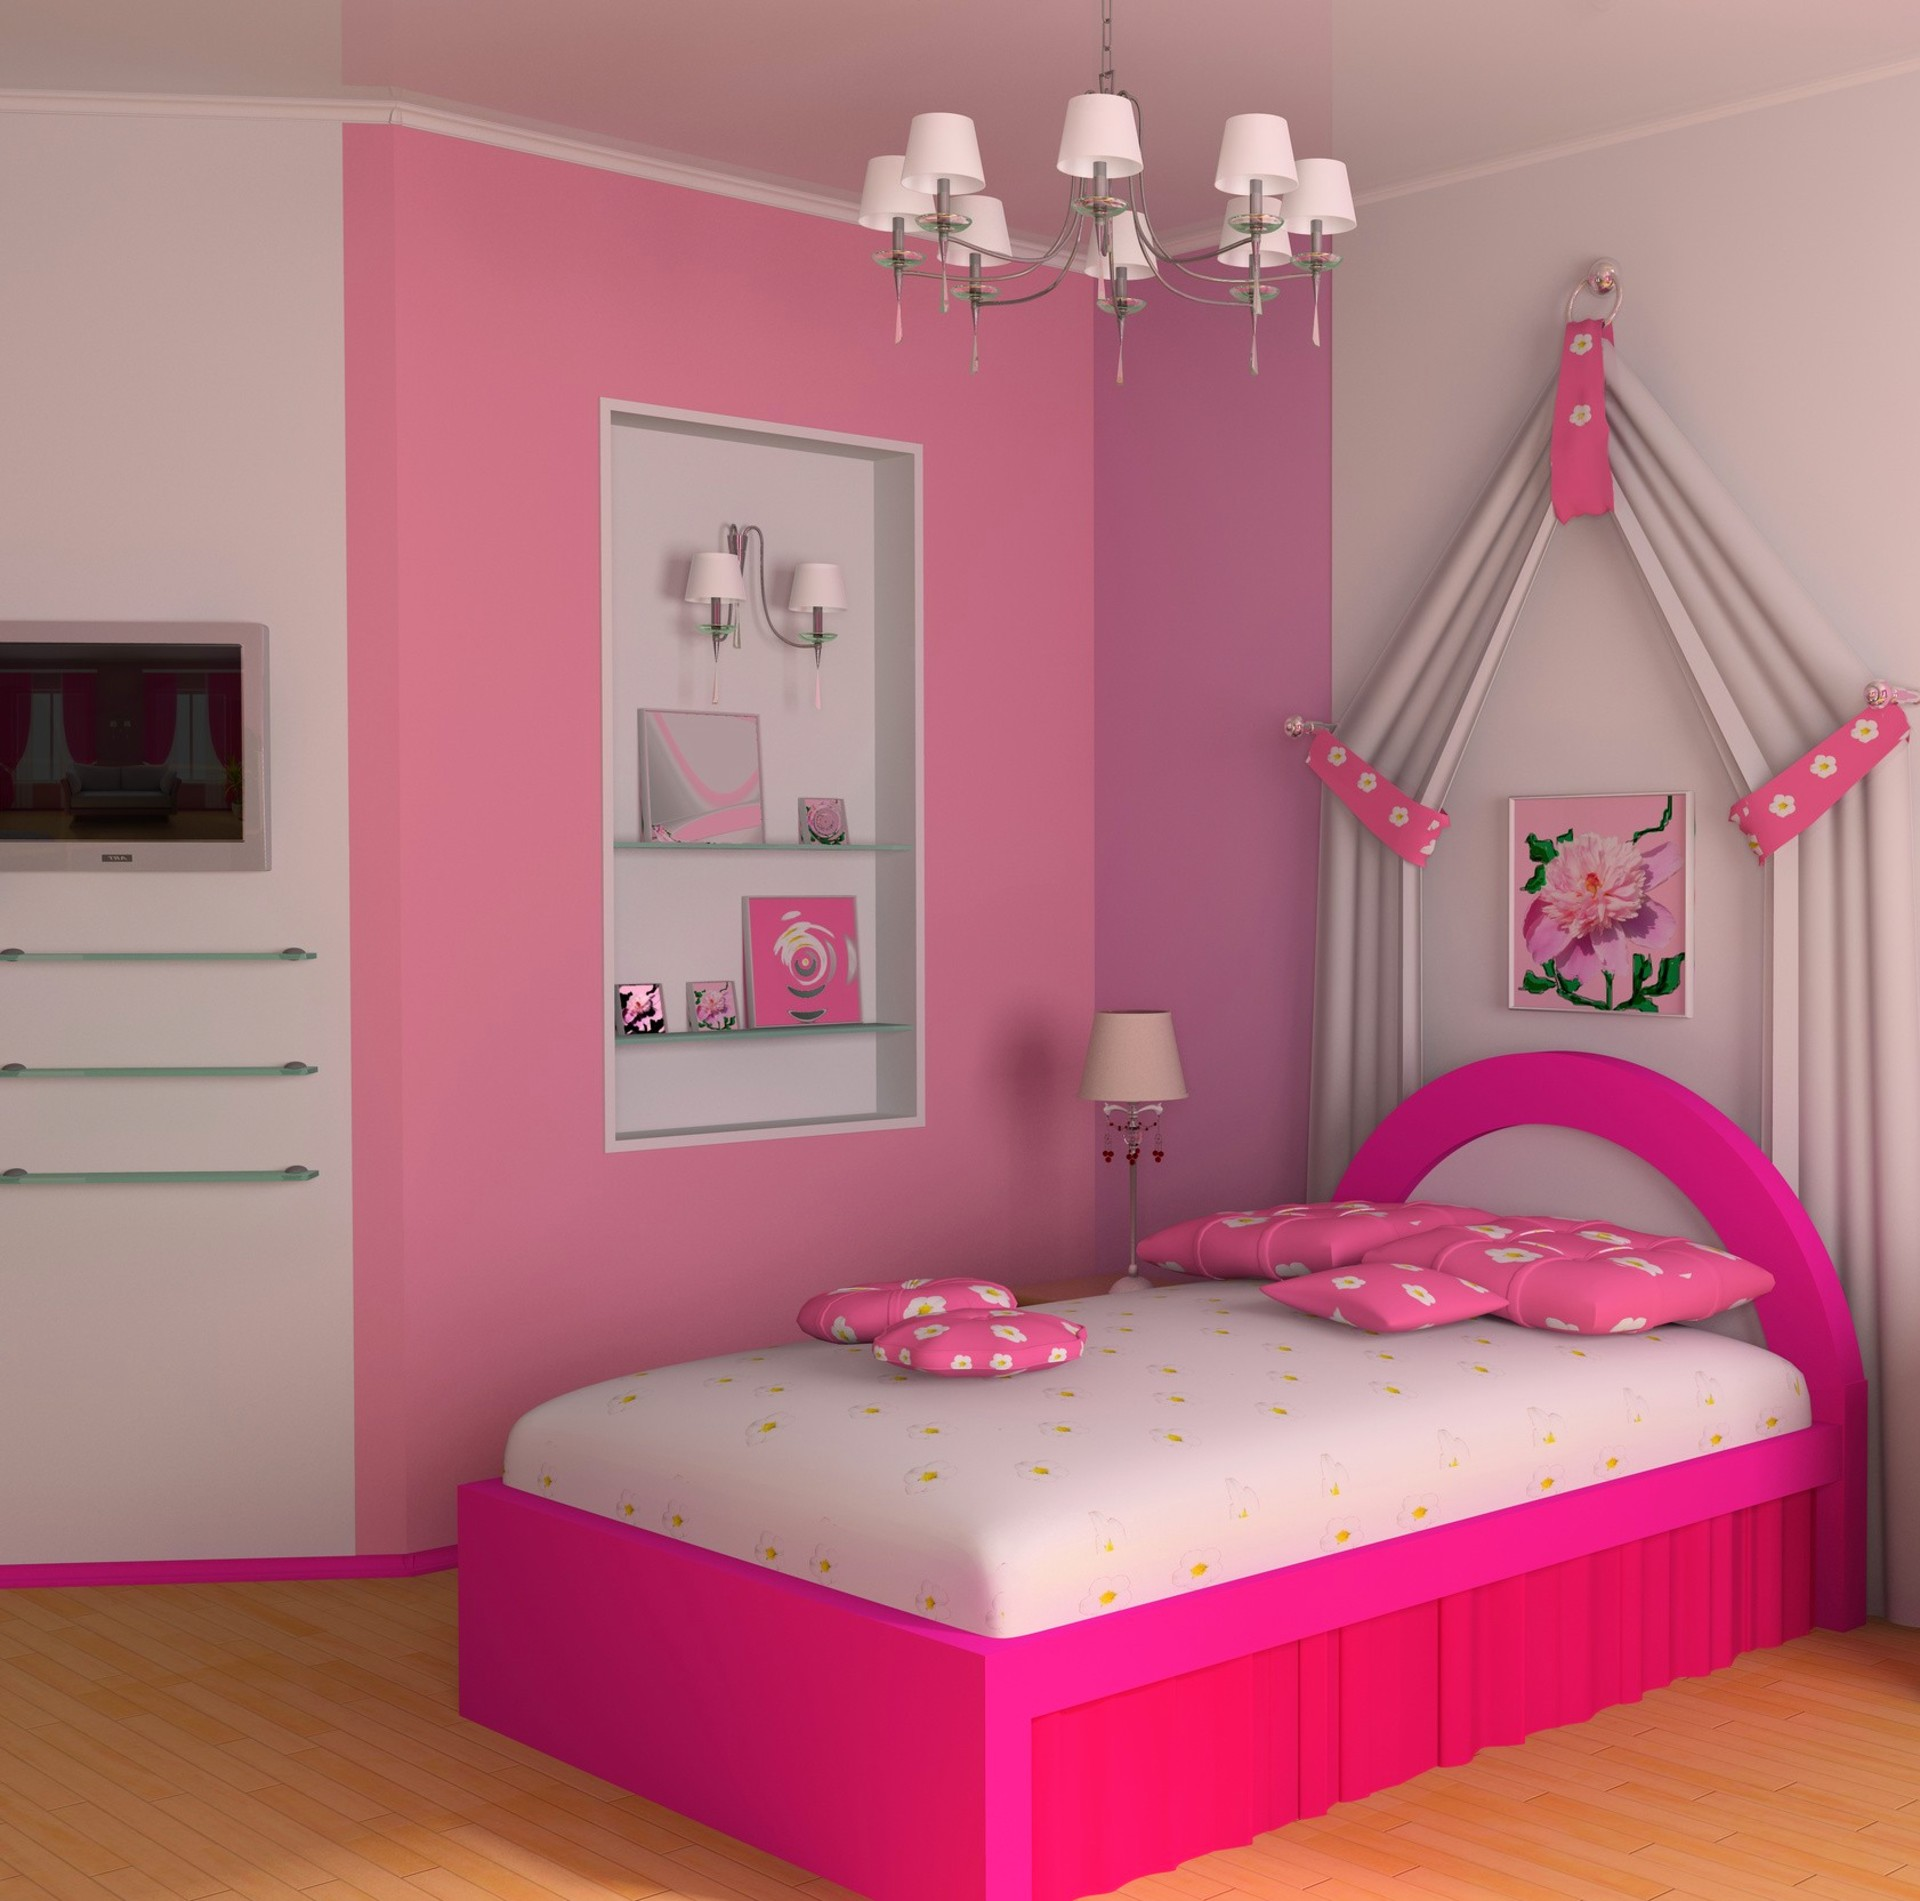 Flowery Bedroom With Sunk In